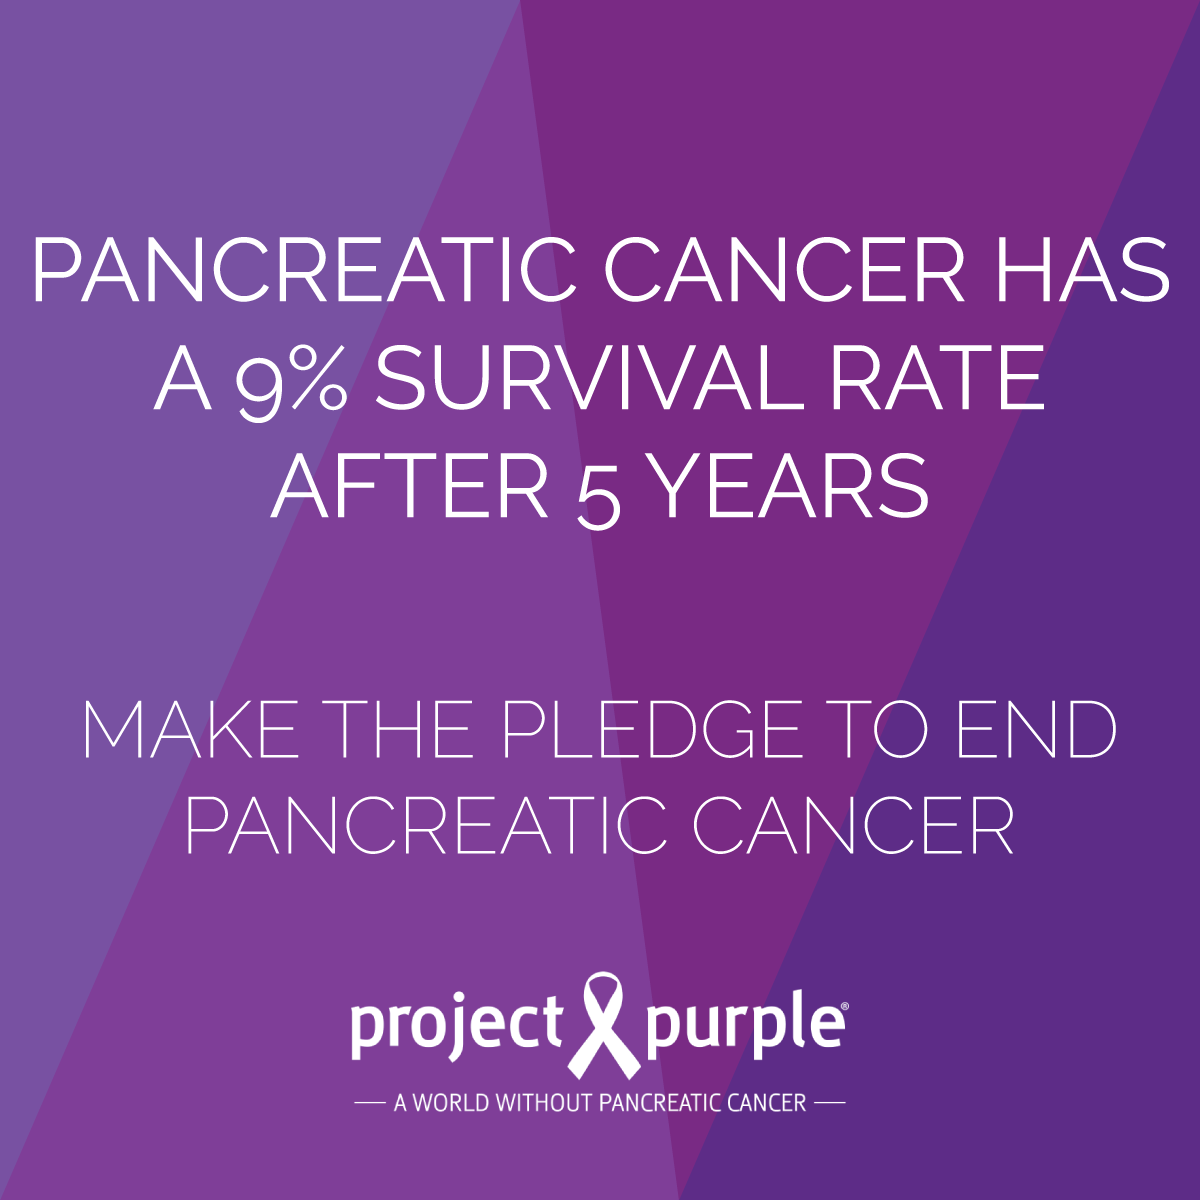 Pledge to End PC 9% survival